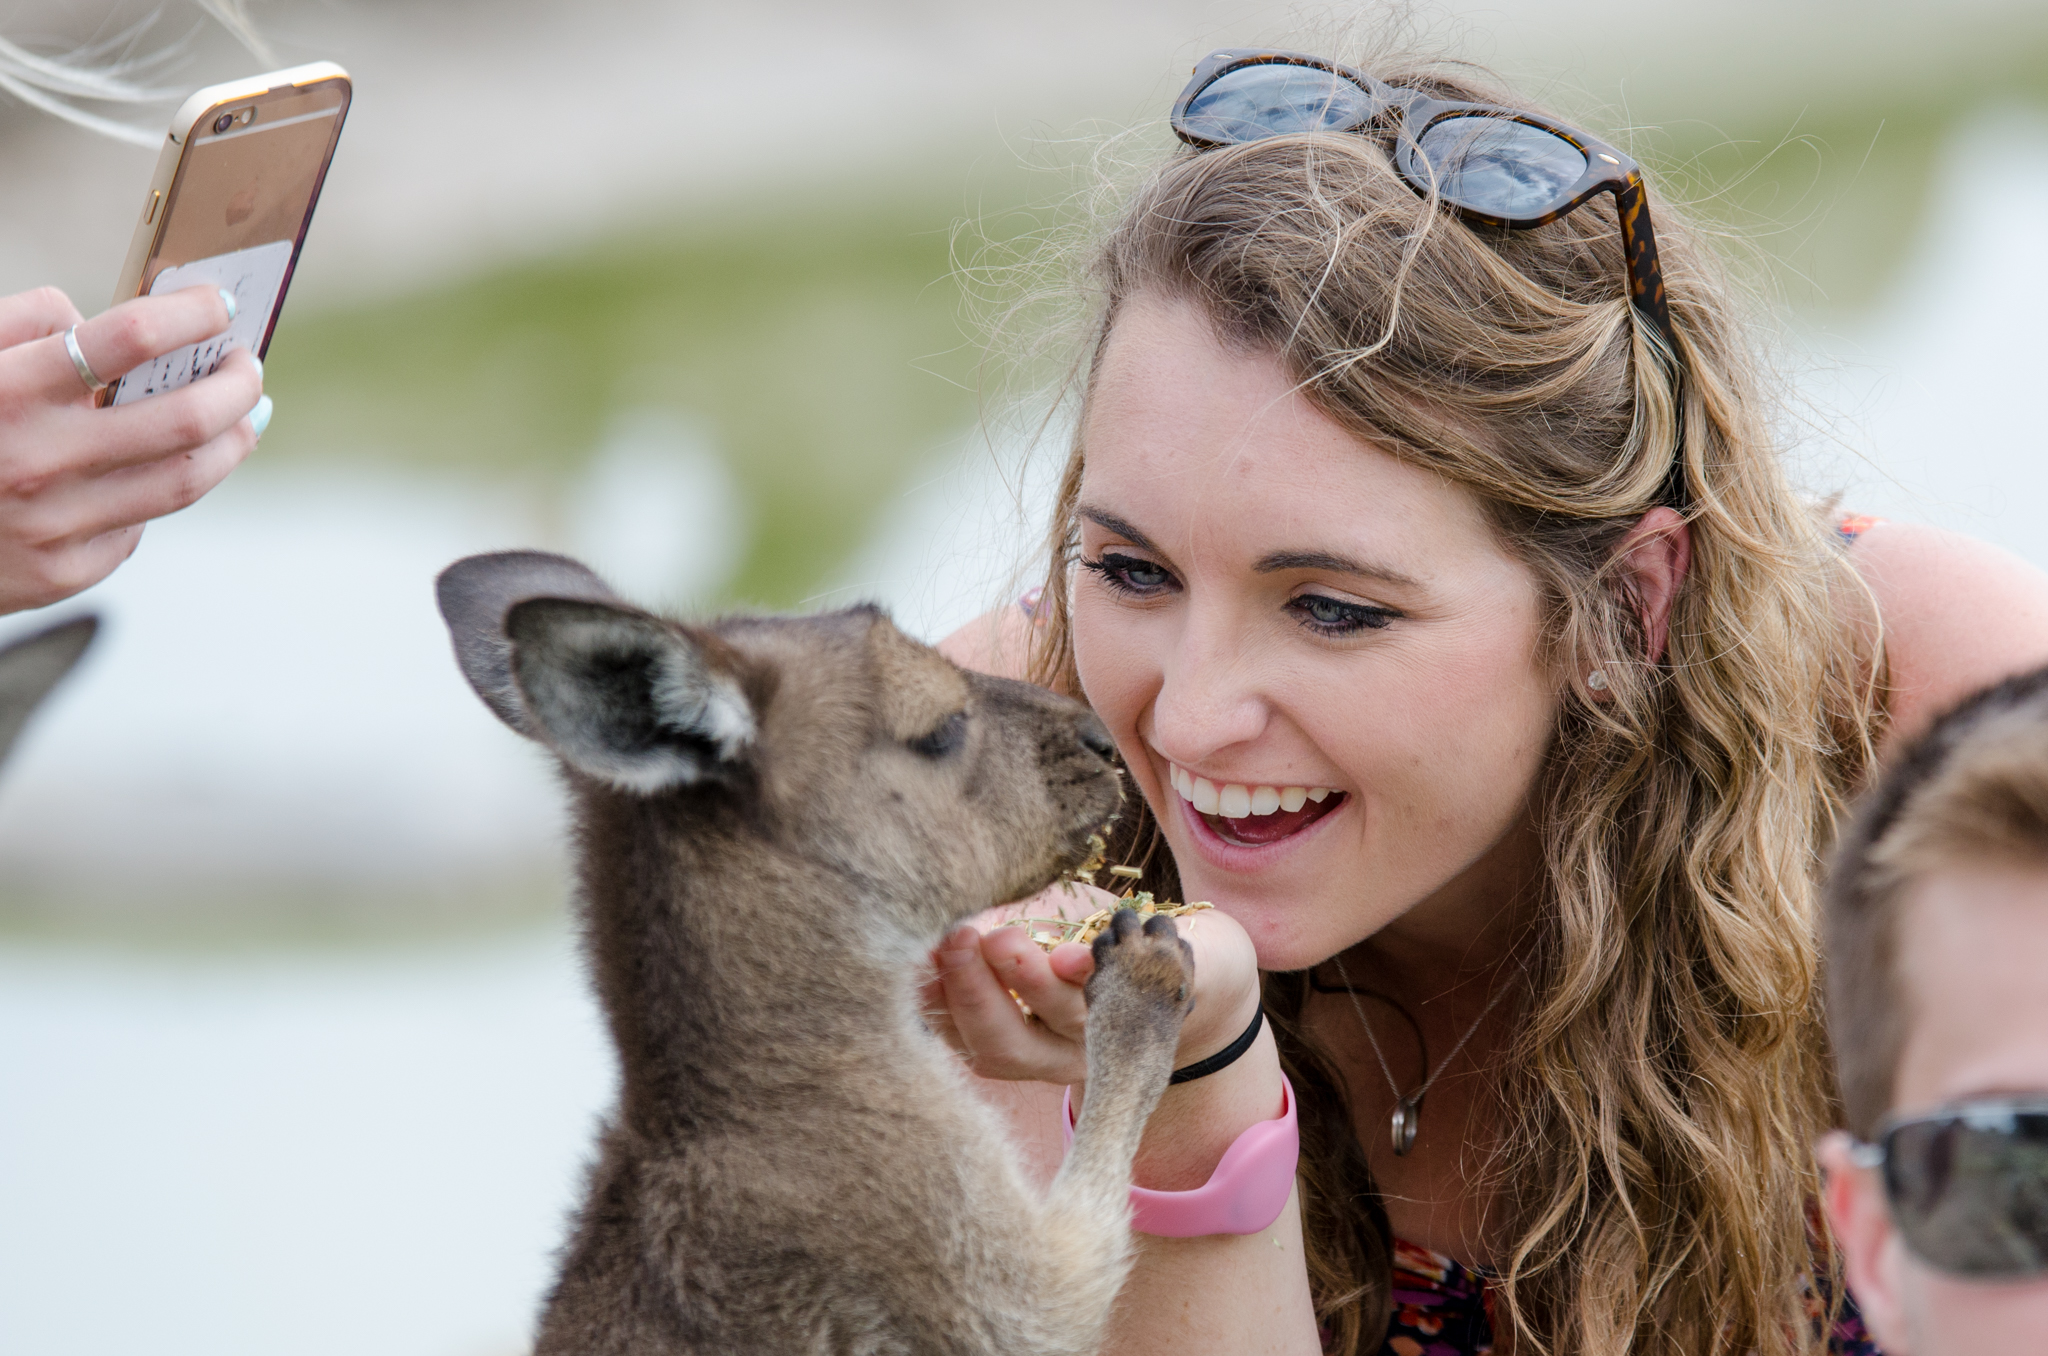 phillip island tour visits maru native wildlife park